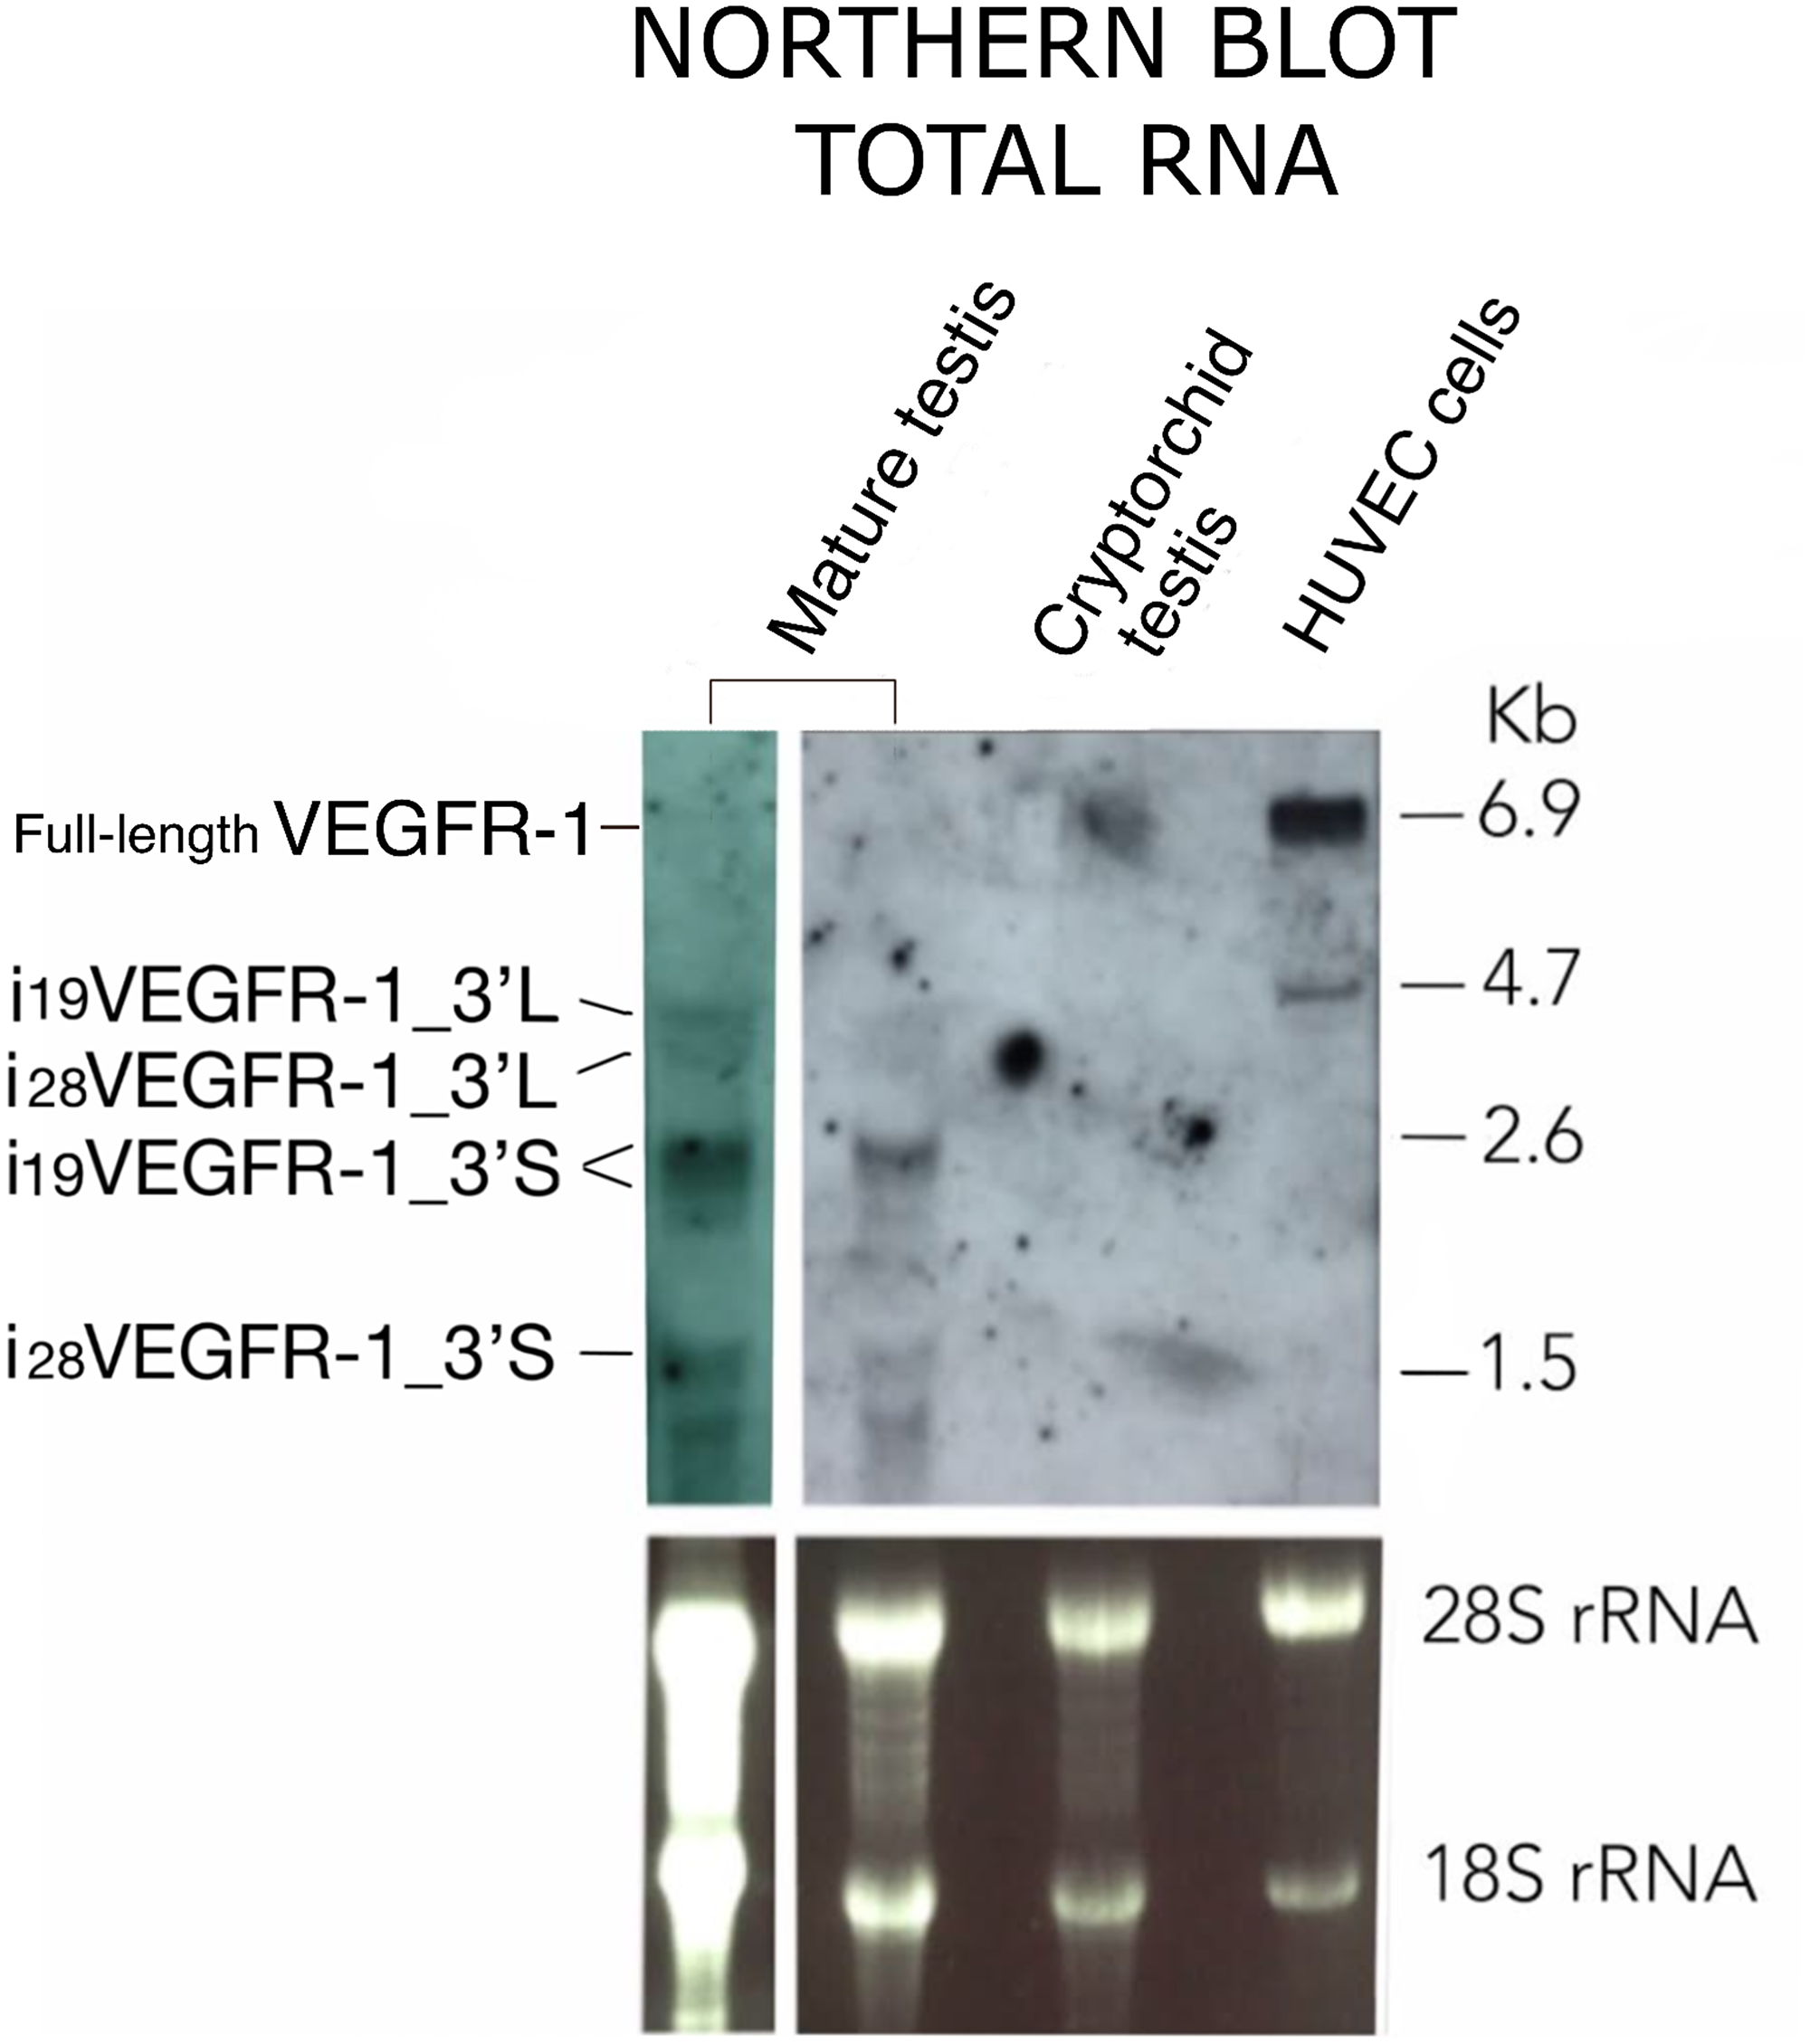 Northern blot pattern of VEGFR-1 from total RNA expressed in mature testis, cryptorchid testis and HUVEC cells as indicated.